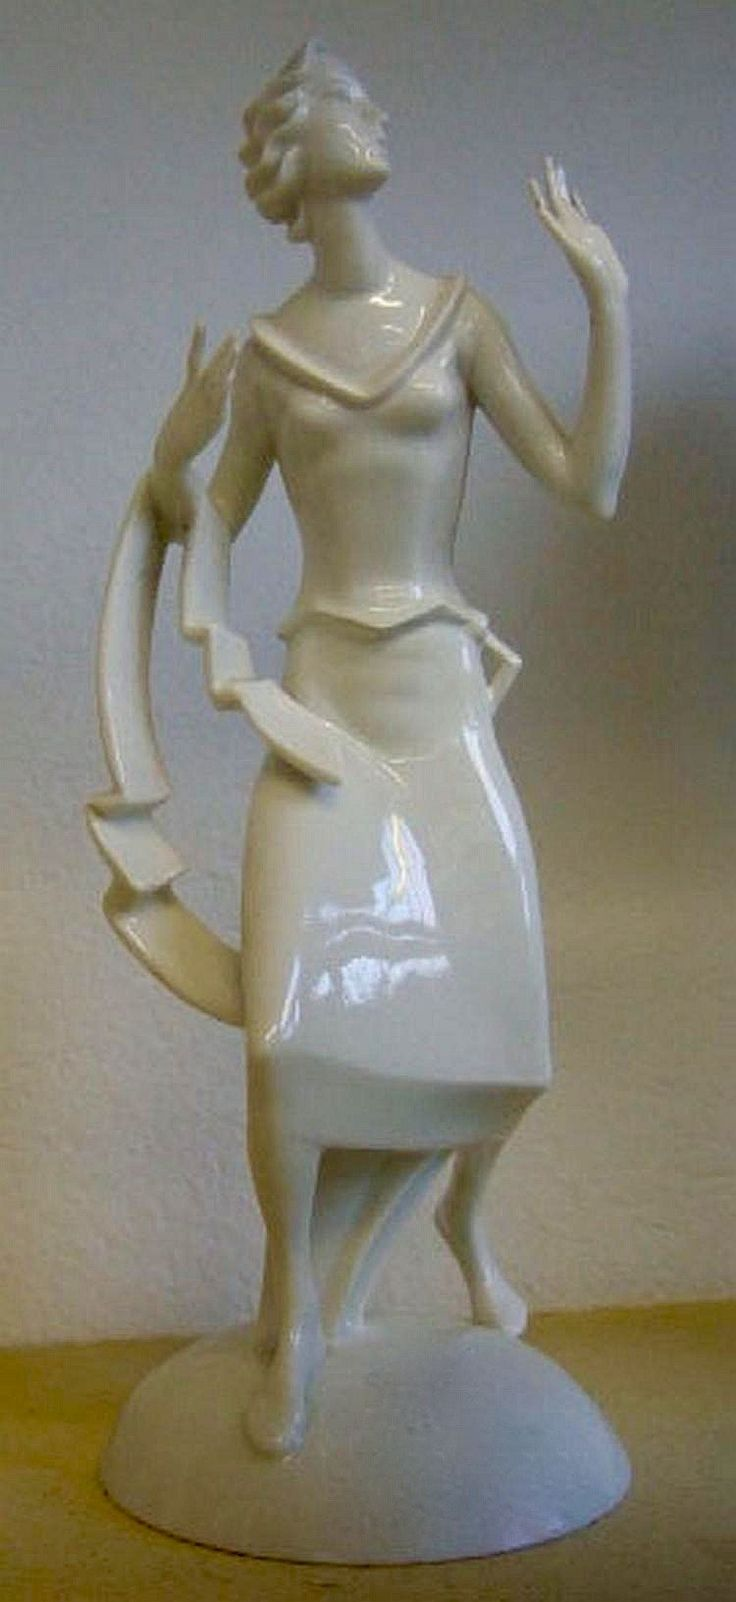 Rosenthal - A white porcelain figure of a lady. 1920.